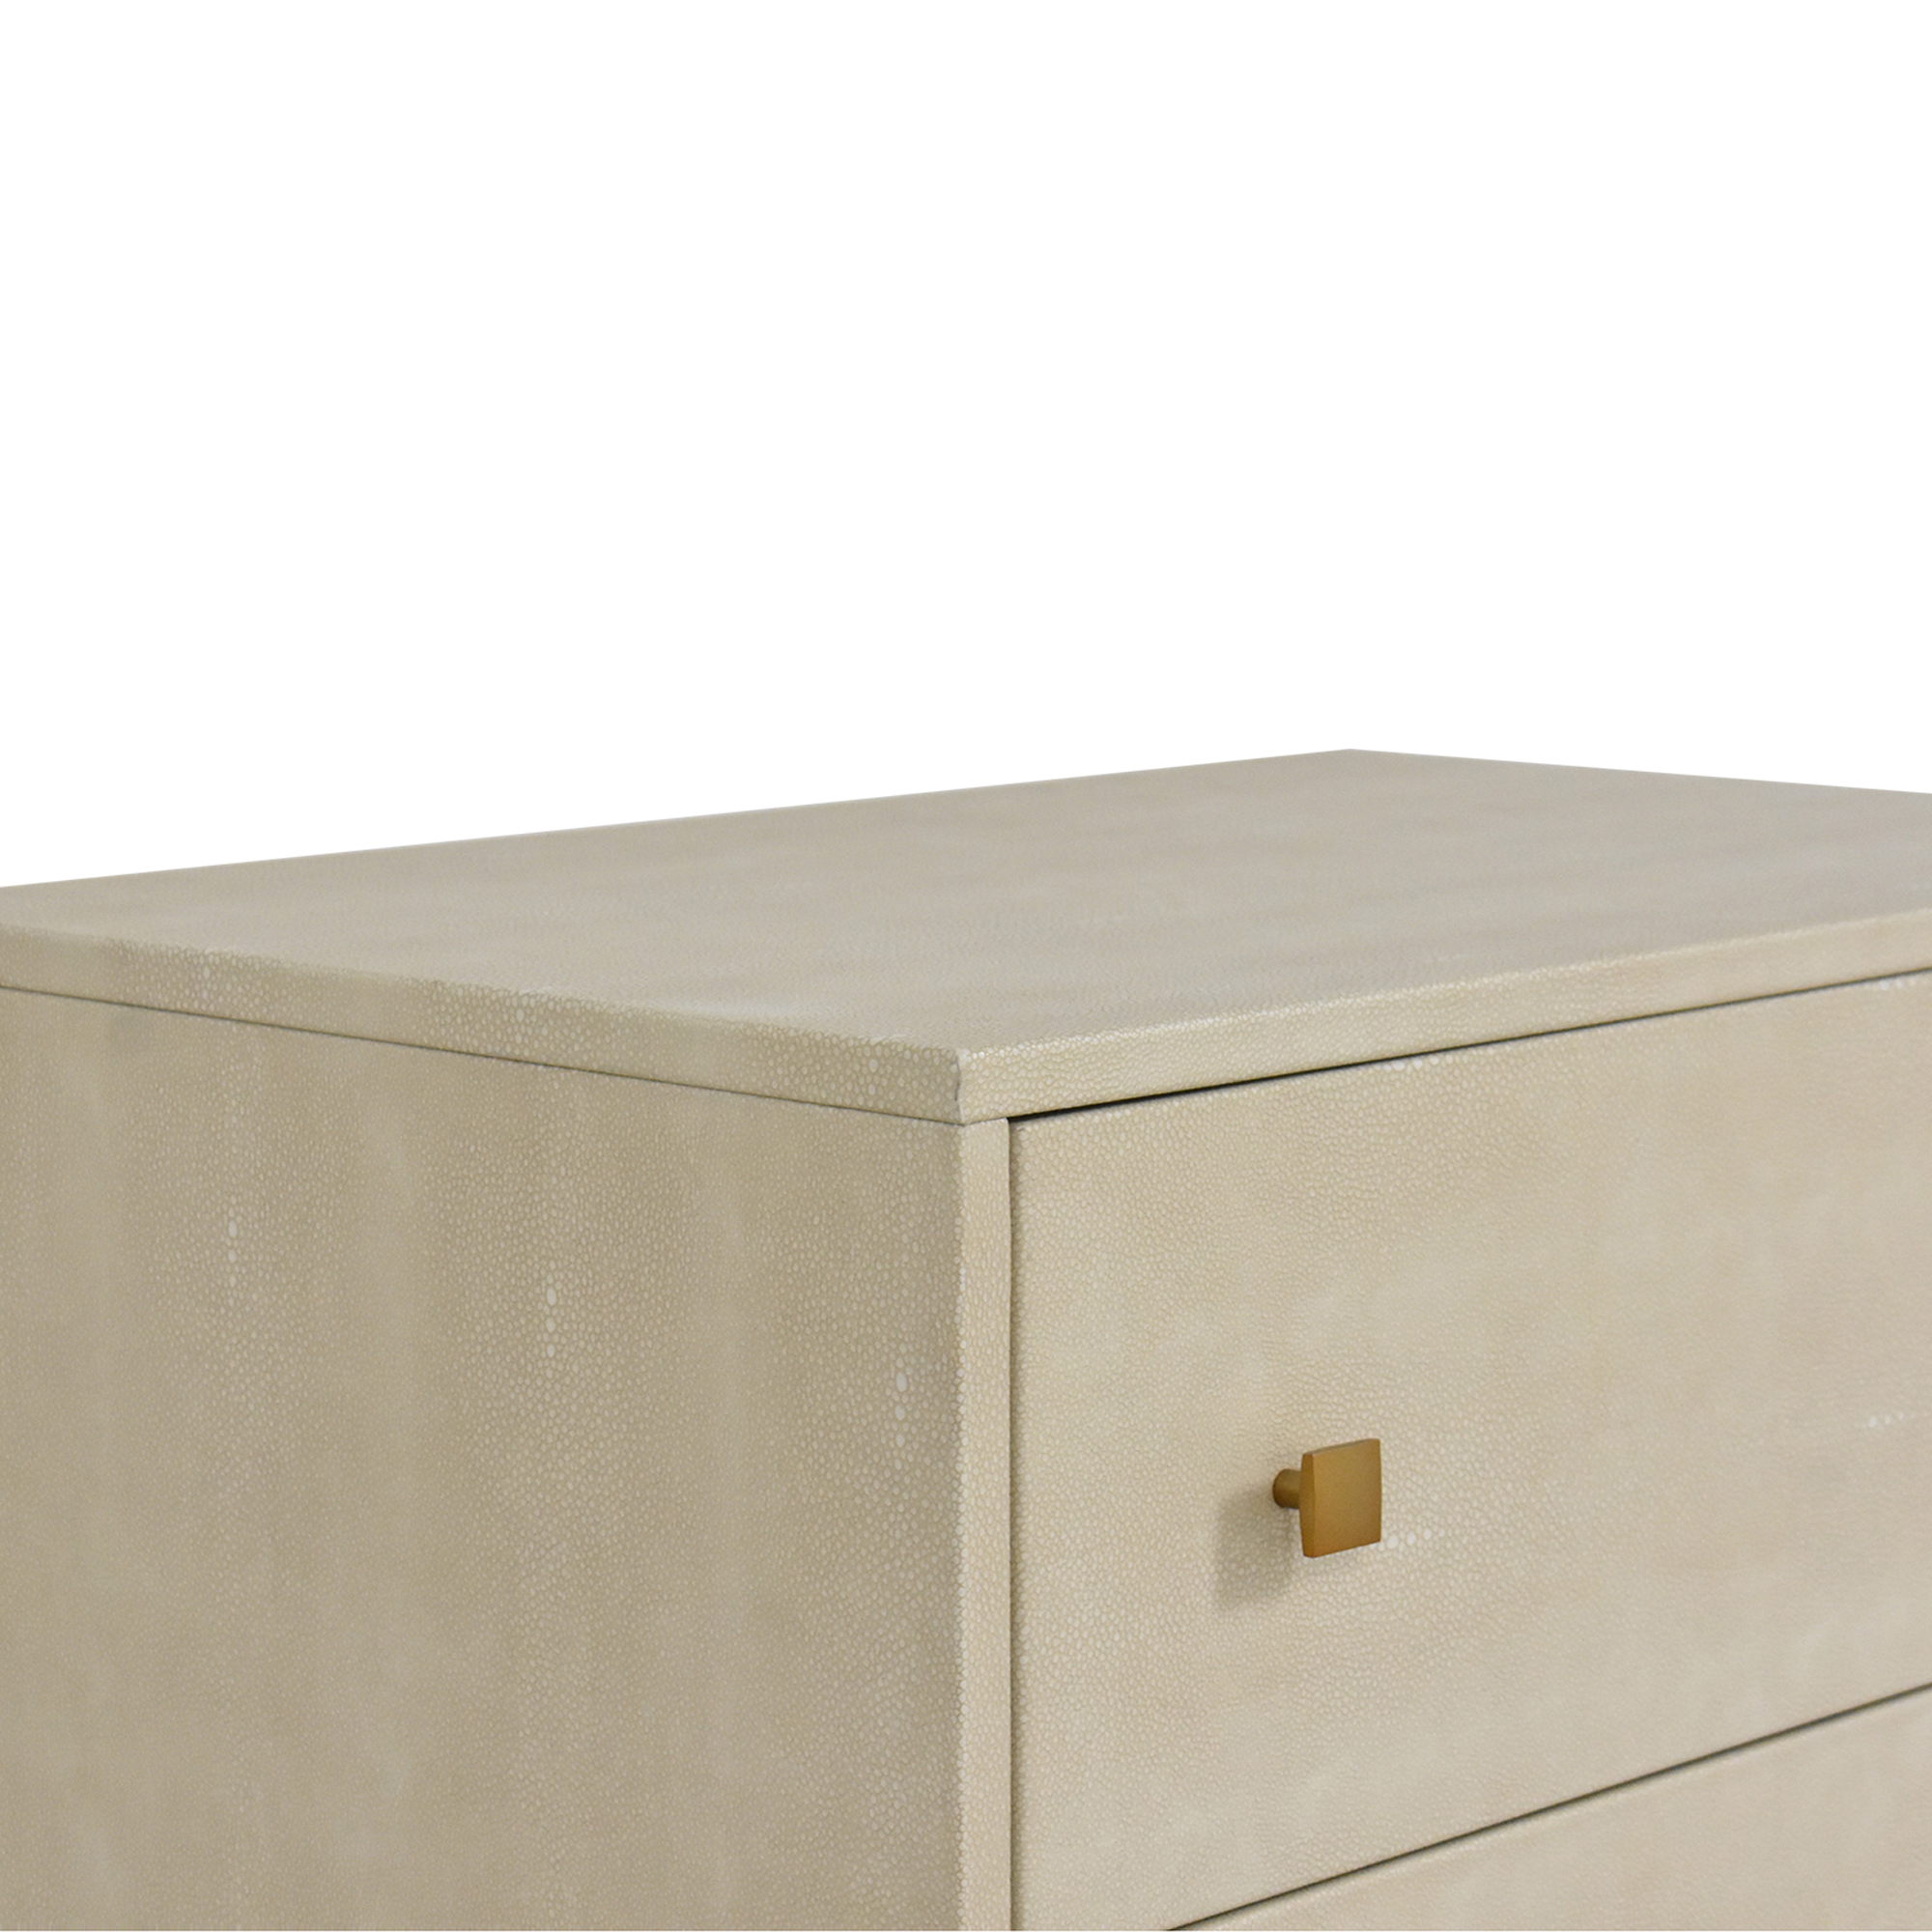 CB2 Embossed Tall Chest CB2